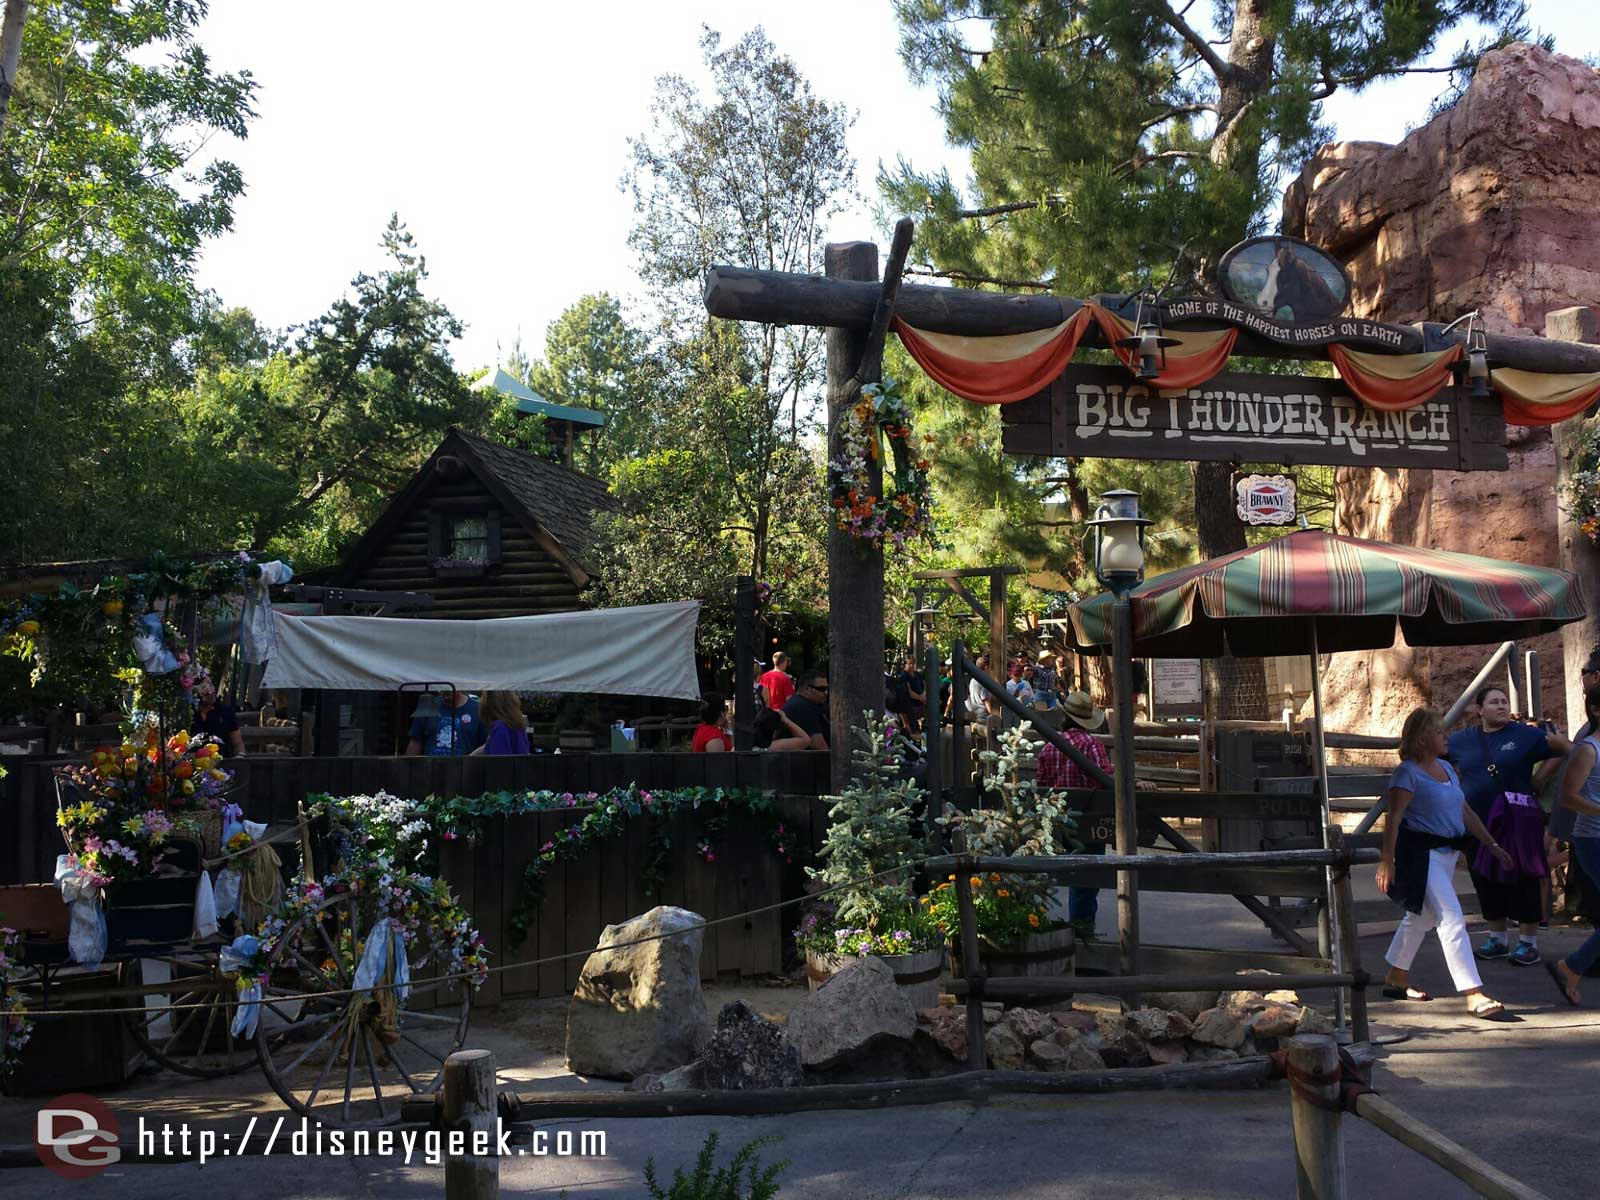 The Big Thunder Ranch area is scheduled to close at  5:00pm today but at 4:50 they were closing the gates and would not let you in.